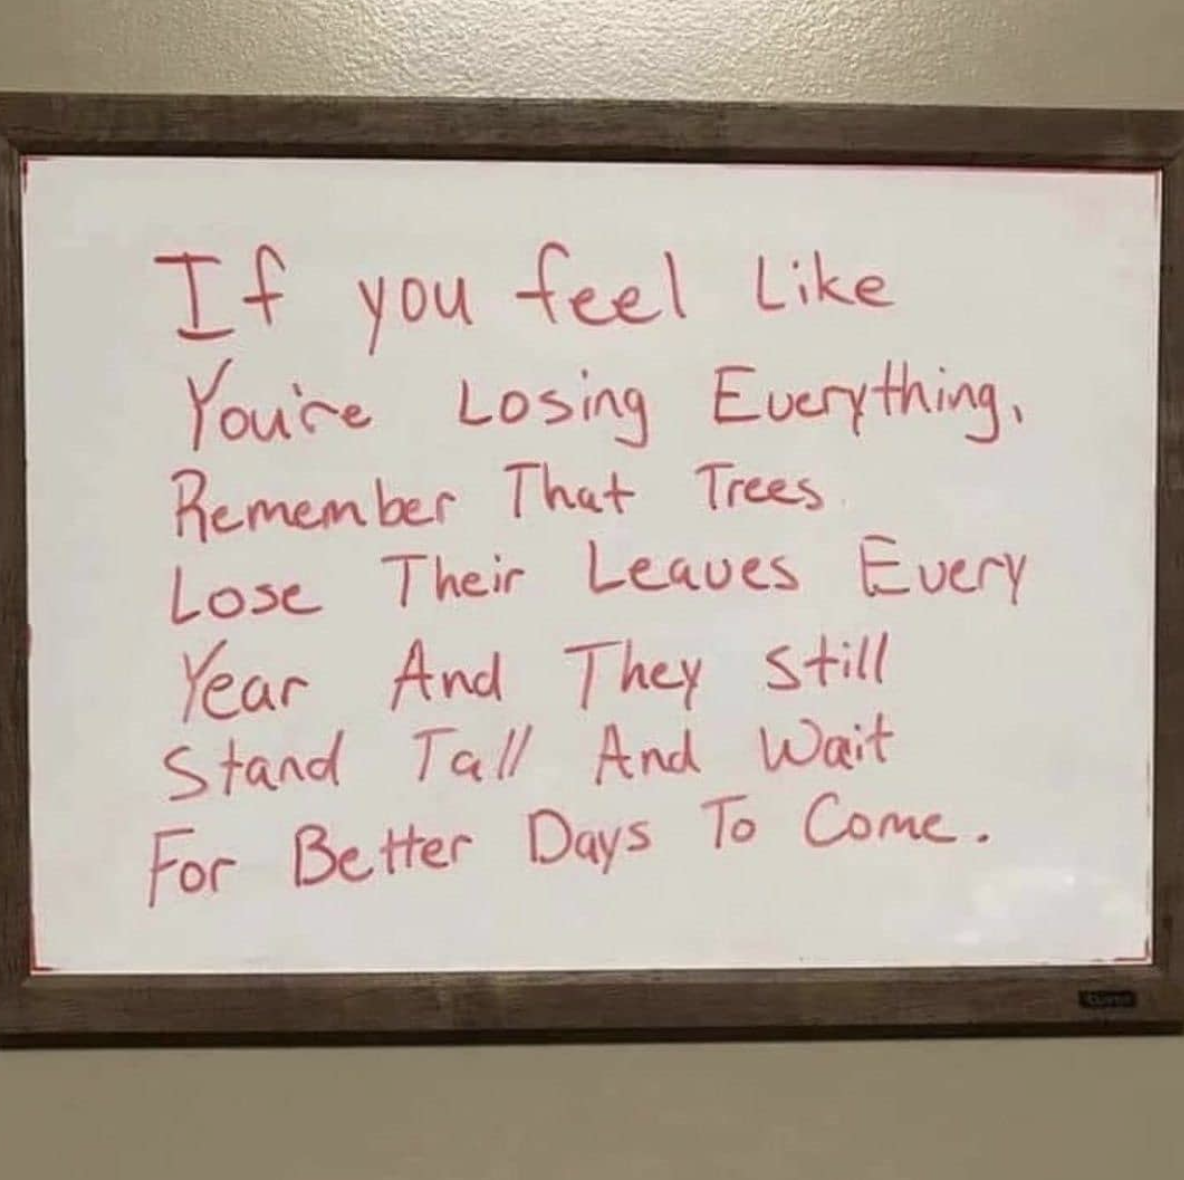 [Image] Never lose yourself. Things will get better, be patient.